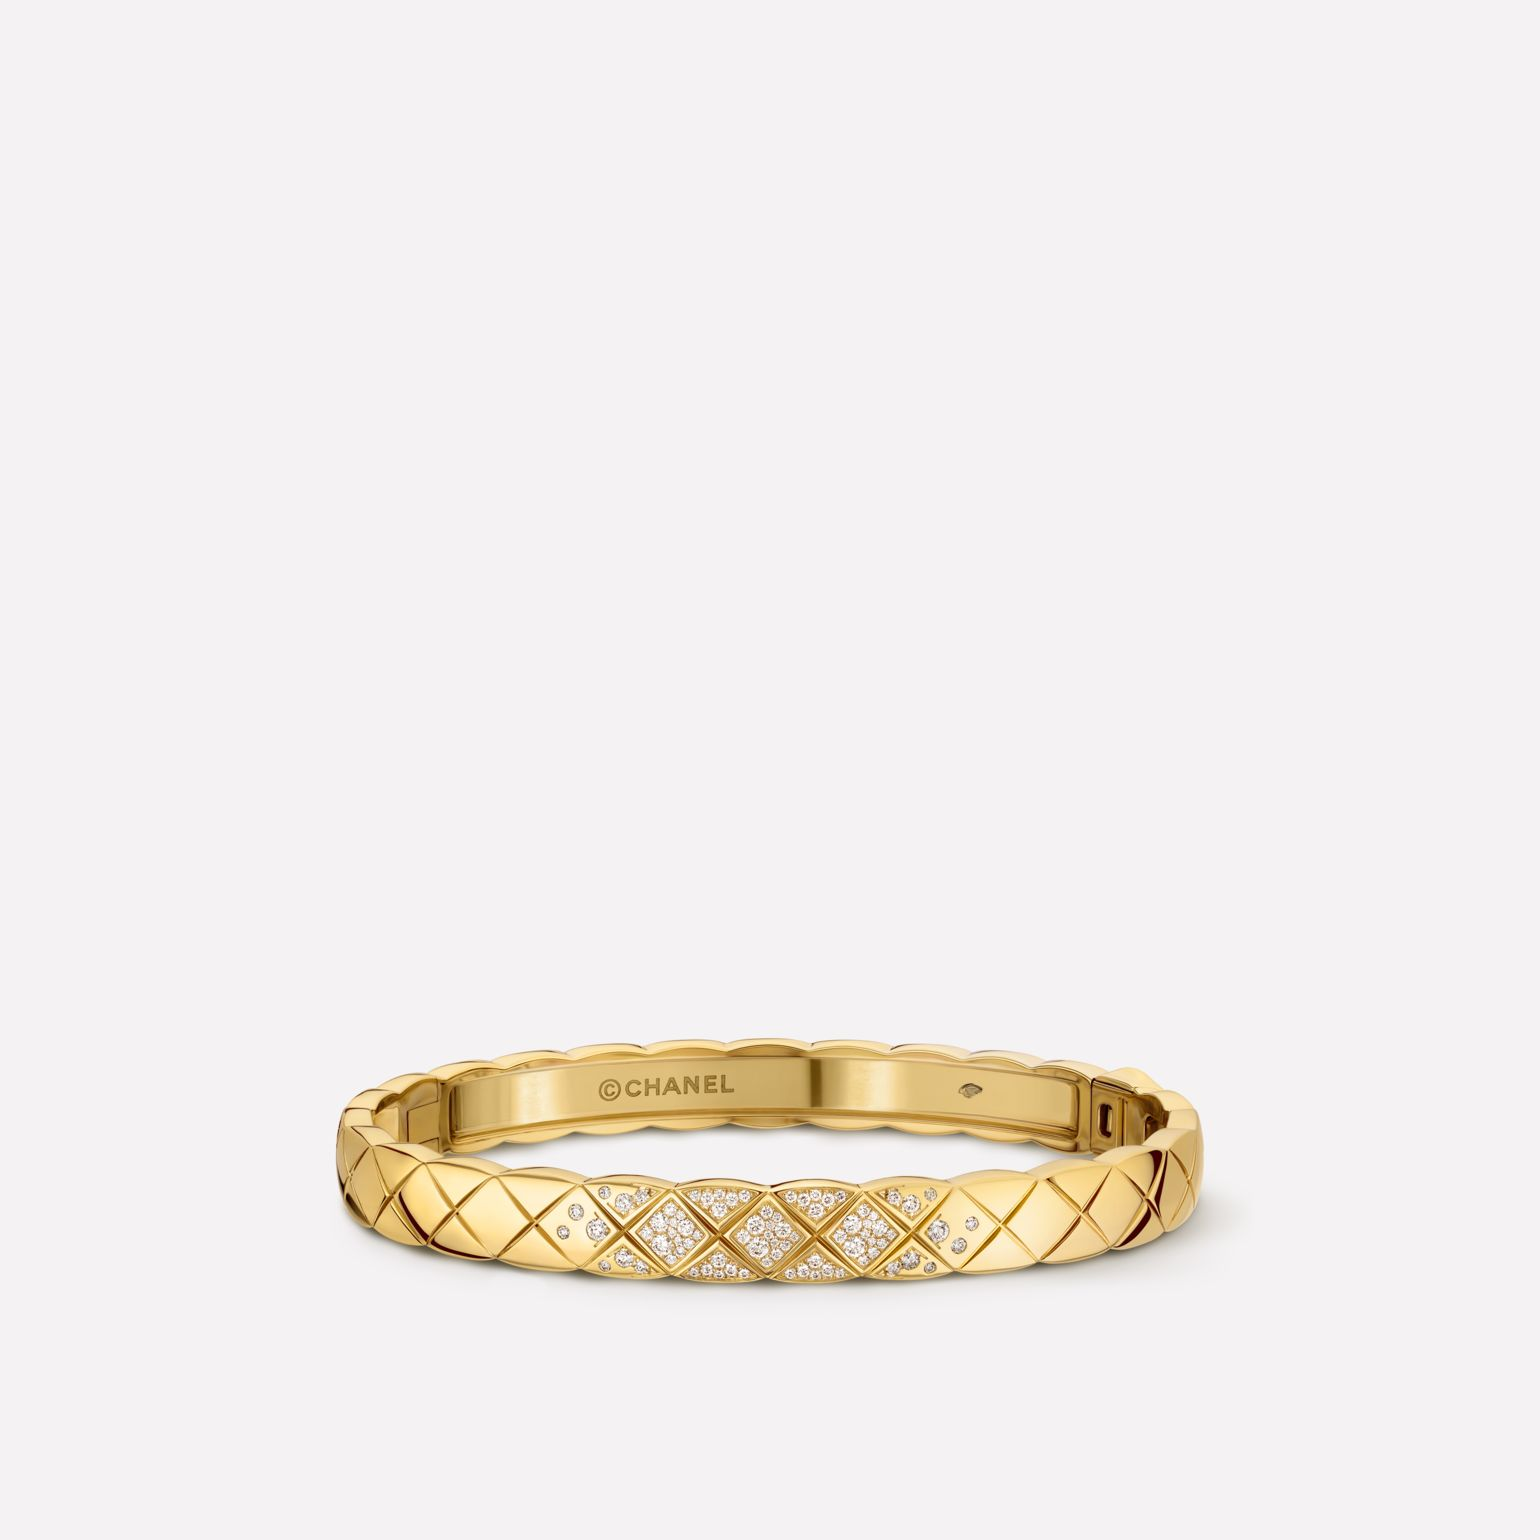 Coco Crush bracelet Quilted motif bangle in 18K yellow gold and diamonds